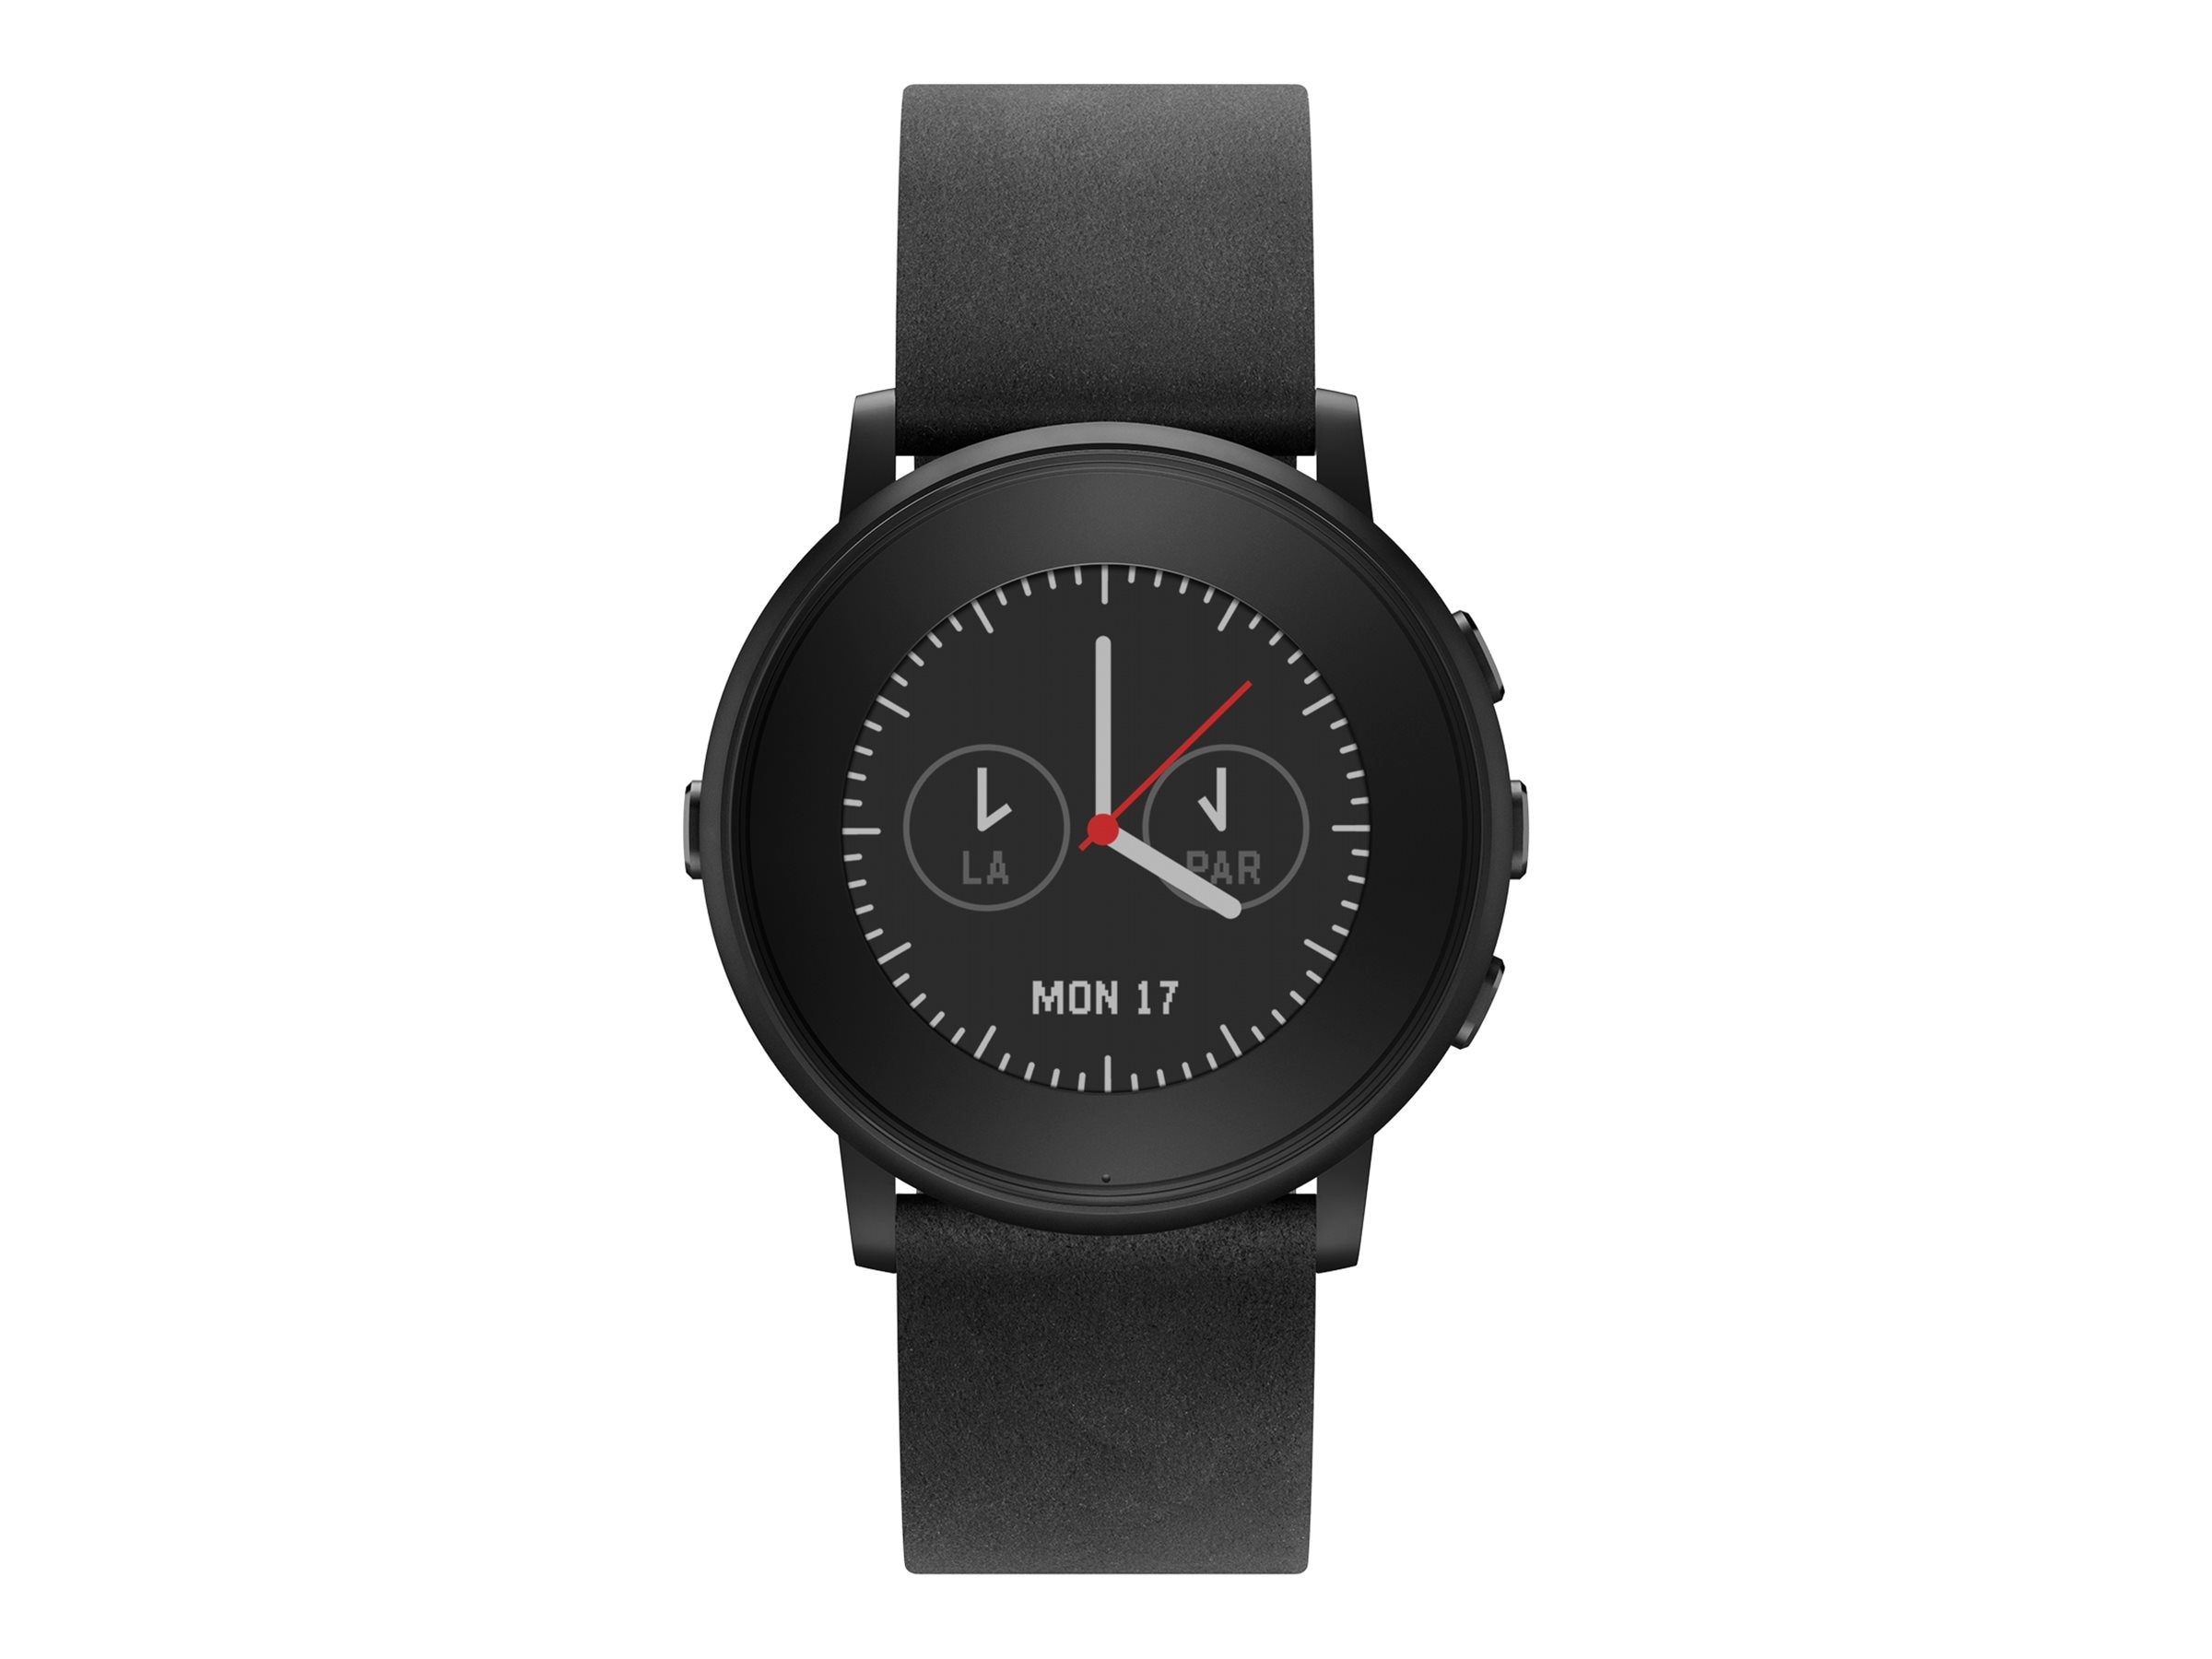 Pebble Round S4.1 Smartwatch, Black, 20mm, 601-00049